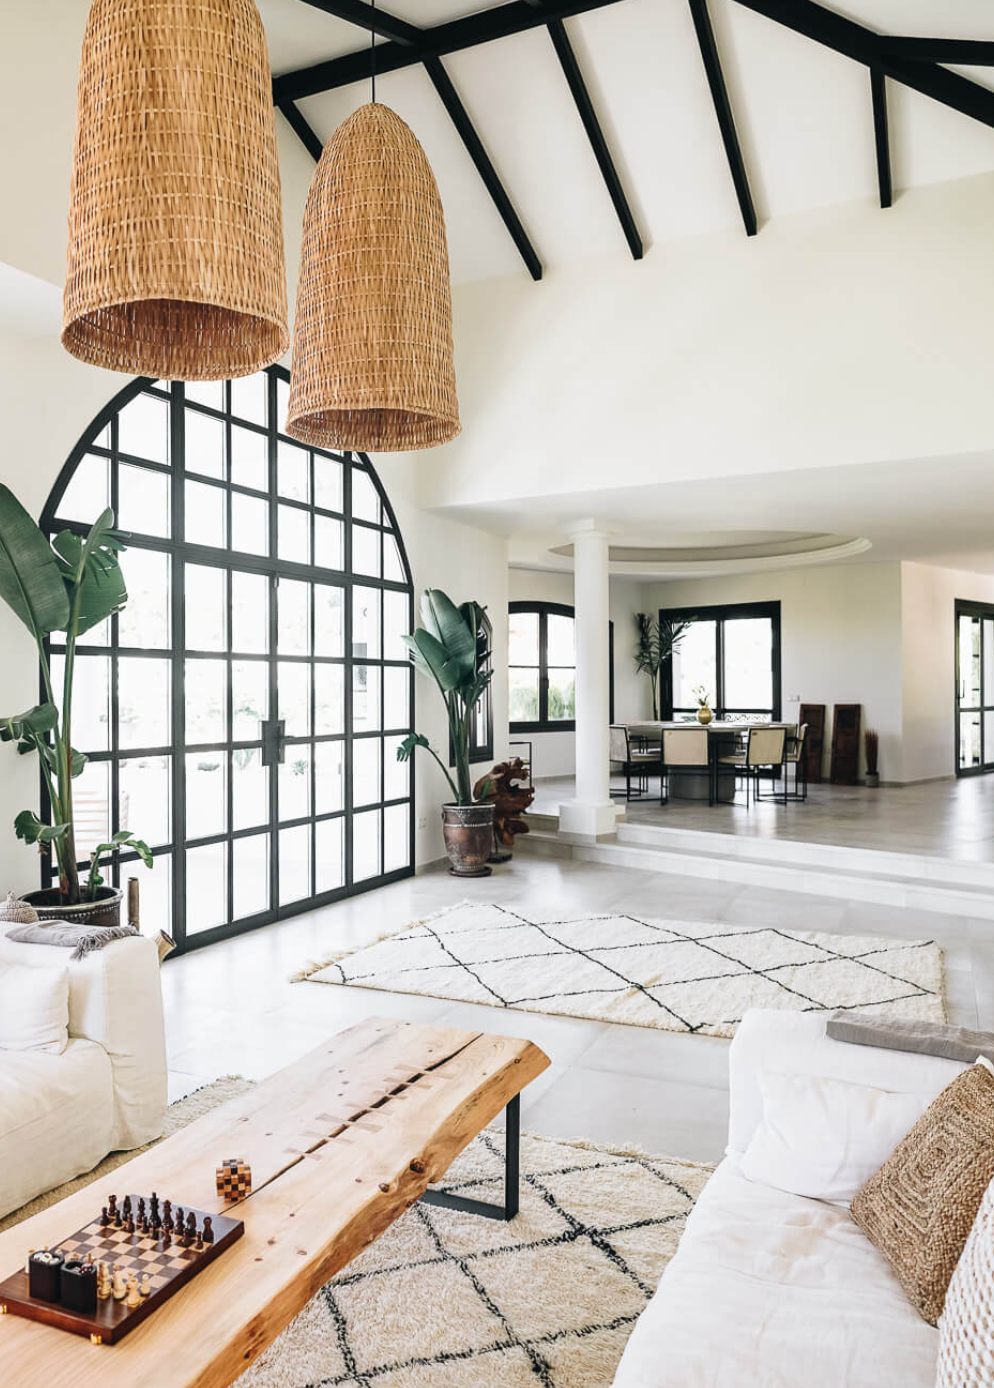 Janni Dehler and Jonni Olsson Casa Castle Home in Marbella